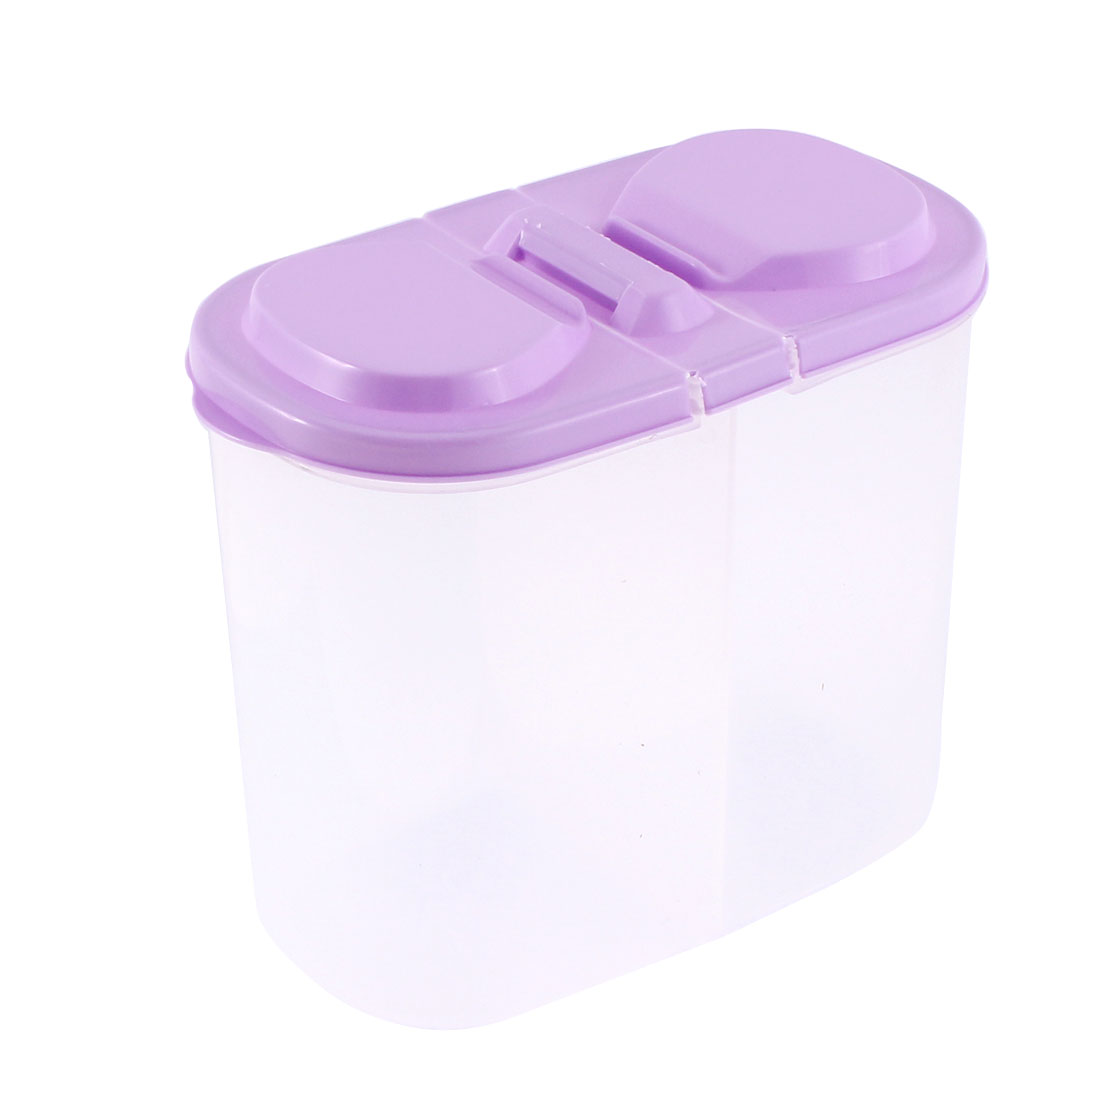 Home Plastic 2 Compartments Food Storage Container 15cm Height Purple